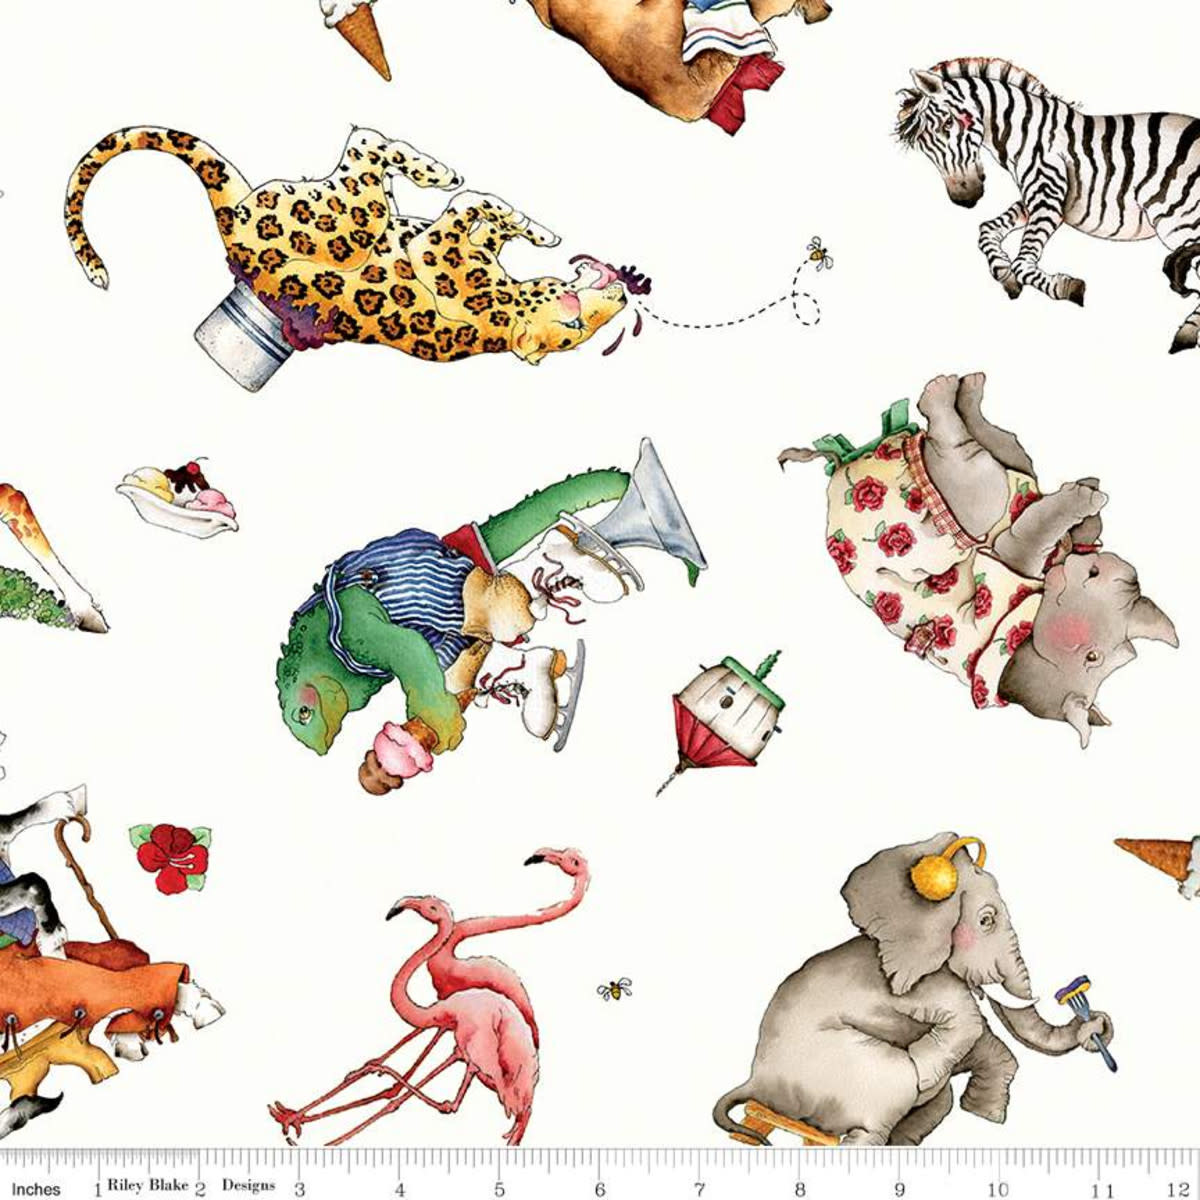 RILEY BLAKE DESIGNS Hungry Animal Alphabet, Tossed Animals, Off White per cm or $22/m